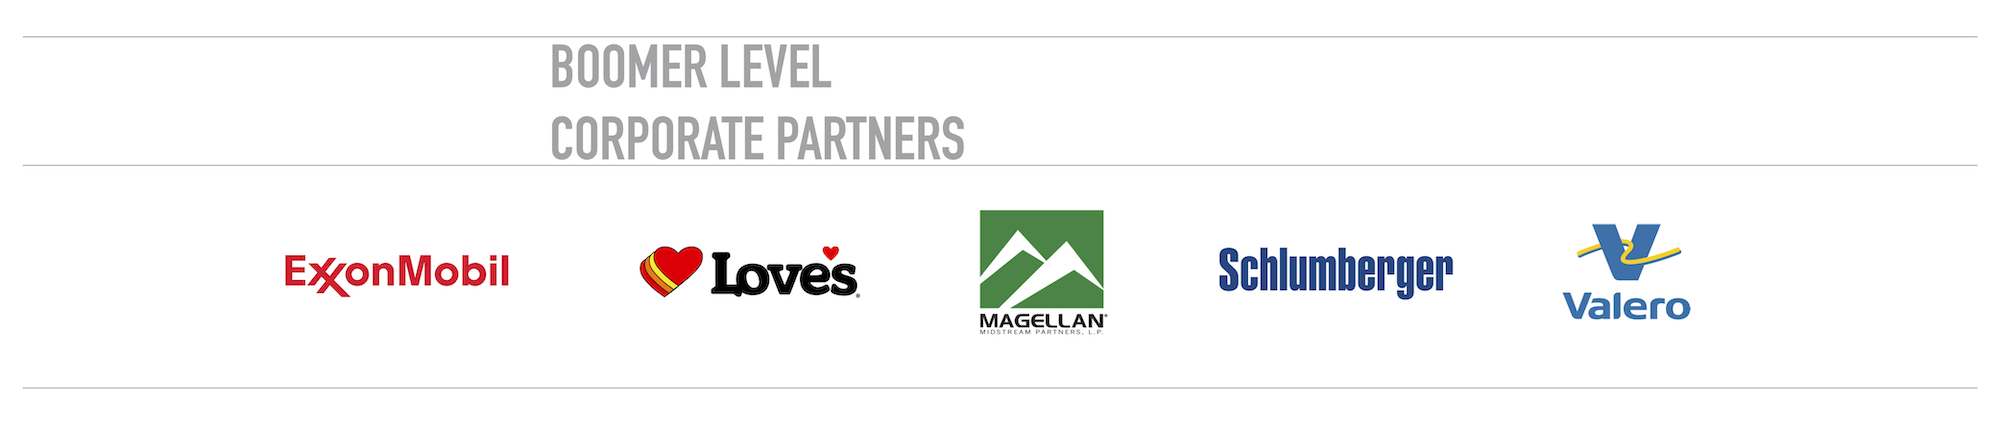 Thank You to Our Boomer Level Corporate Partners